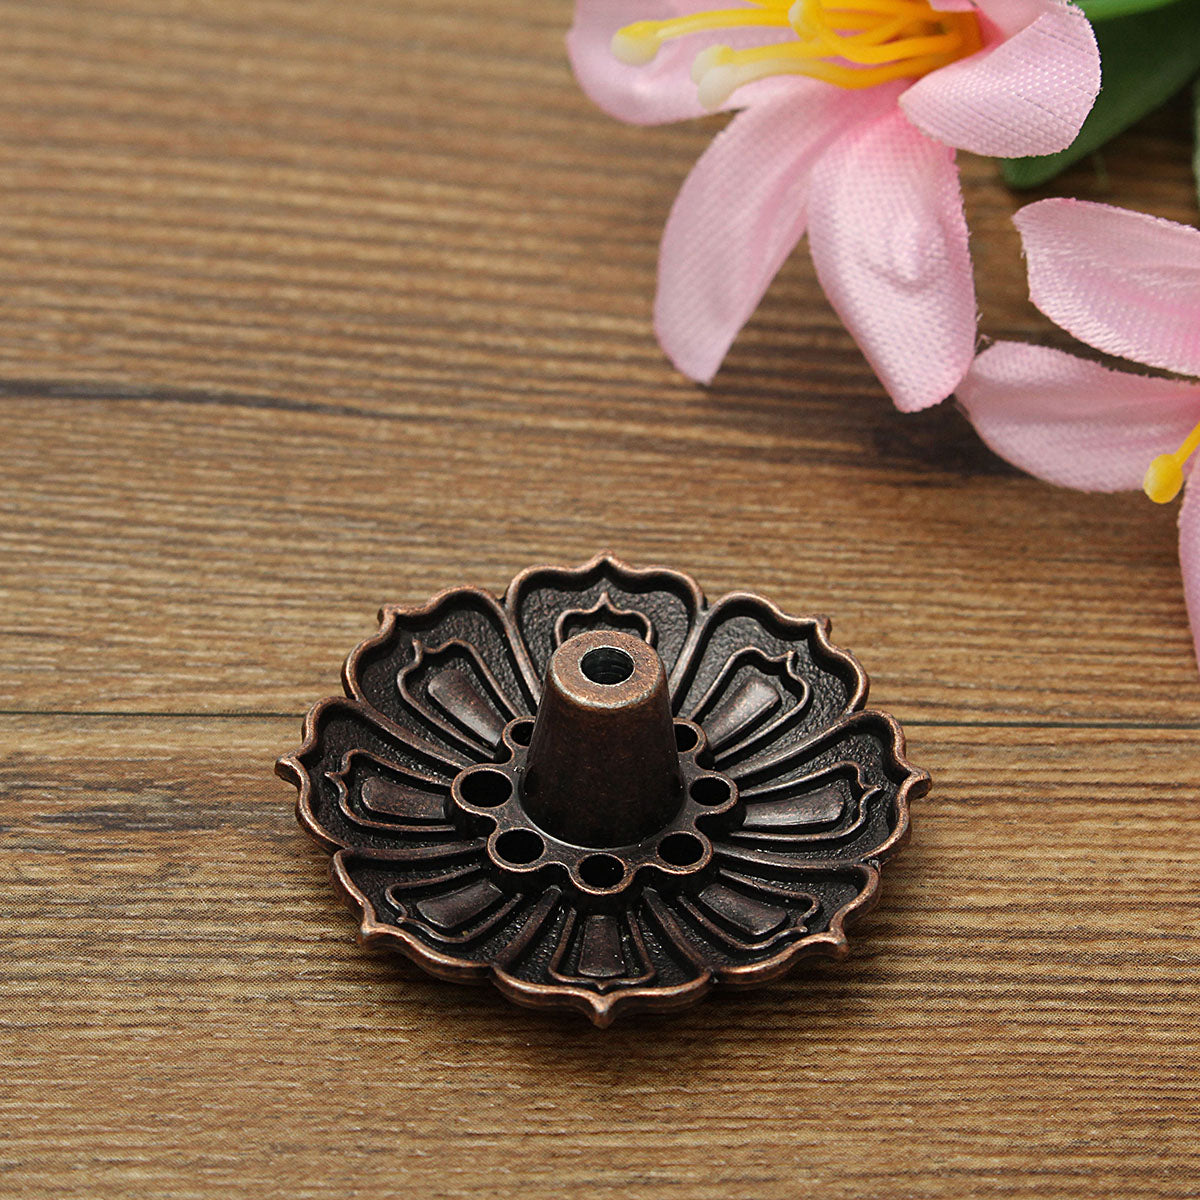 Copper Color Lotus Flower Incense Burner | Stick or Cone Incense